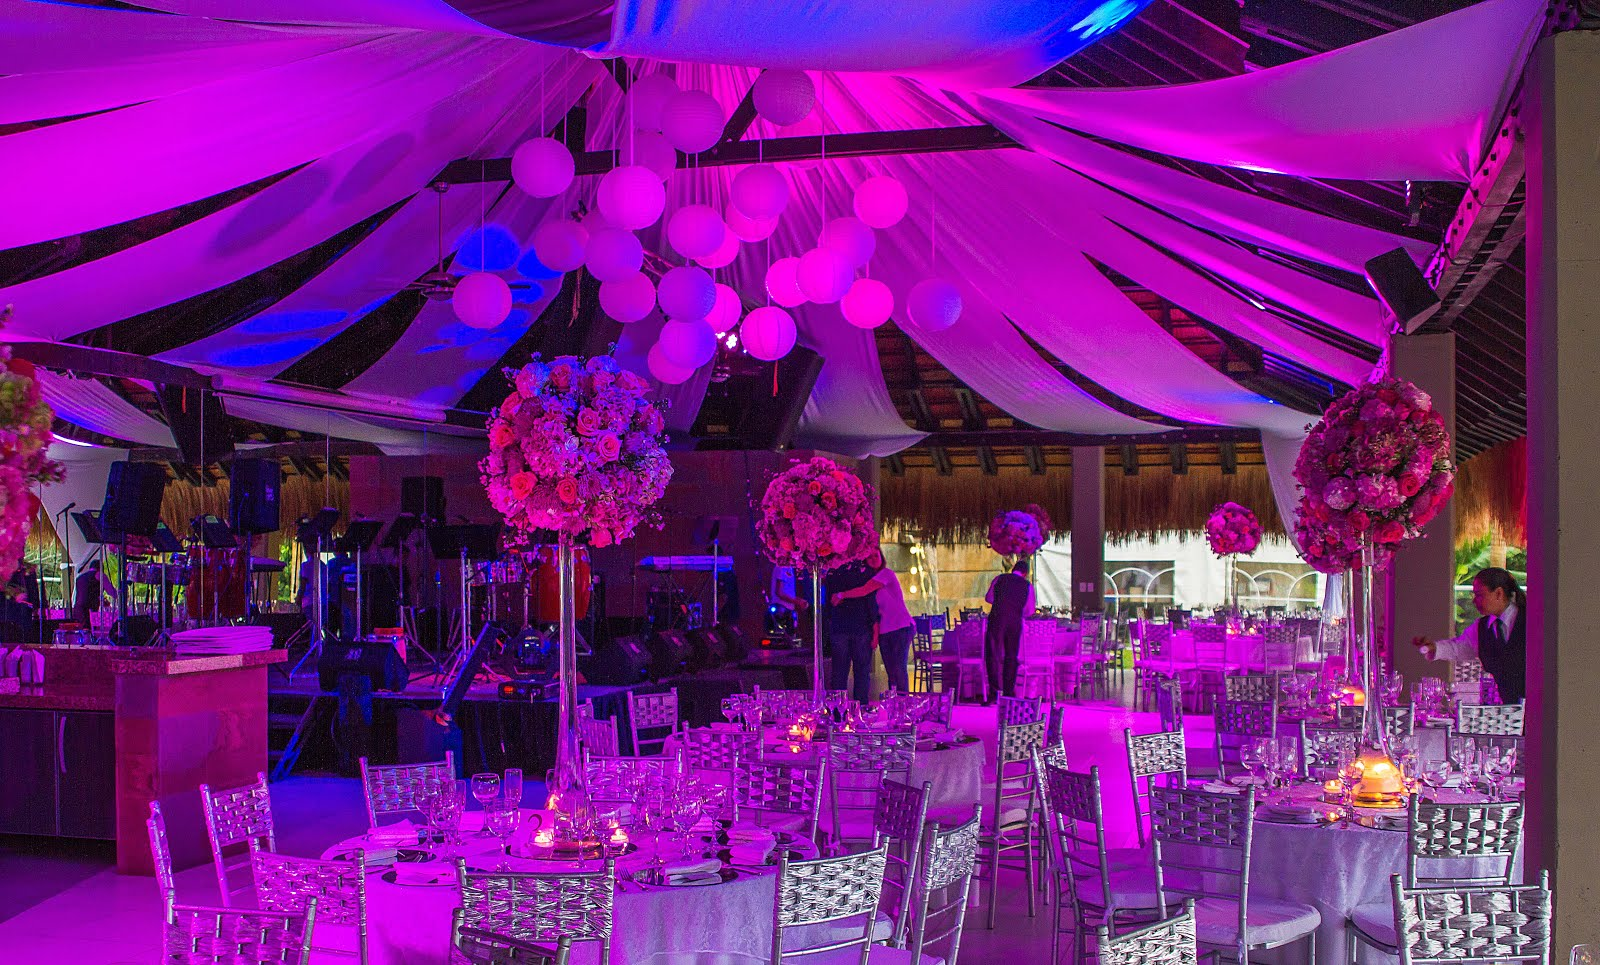 La importancias de decorar adecuadamente tus eventos sociales for Decoracion de salones para eventos